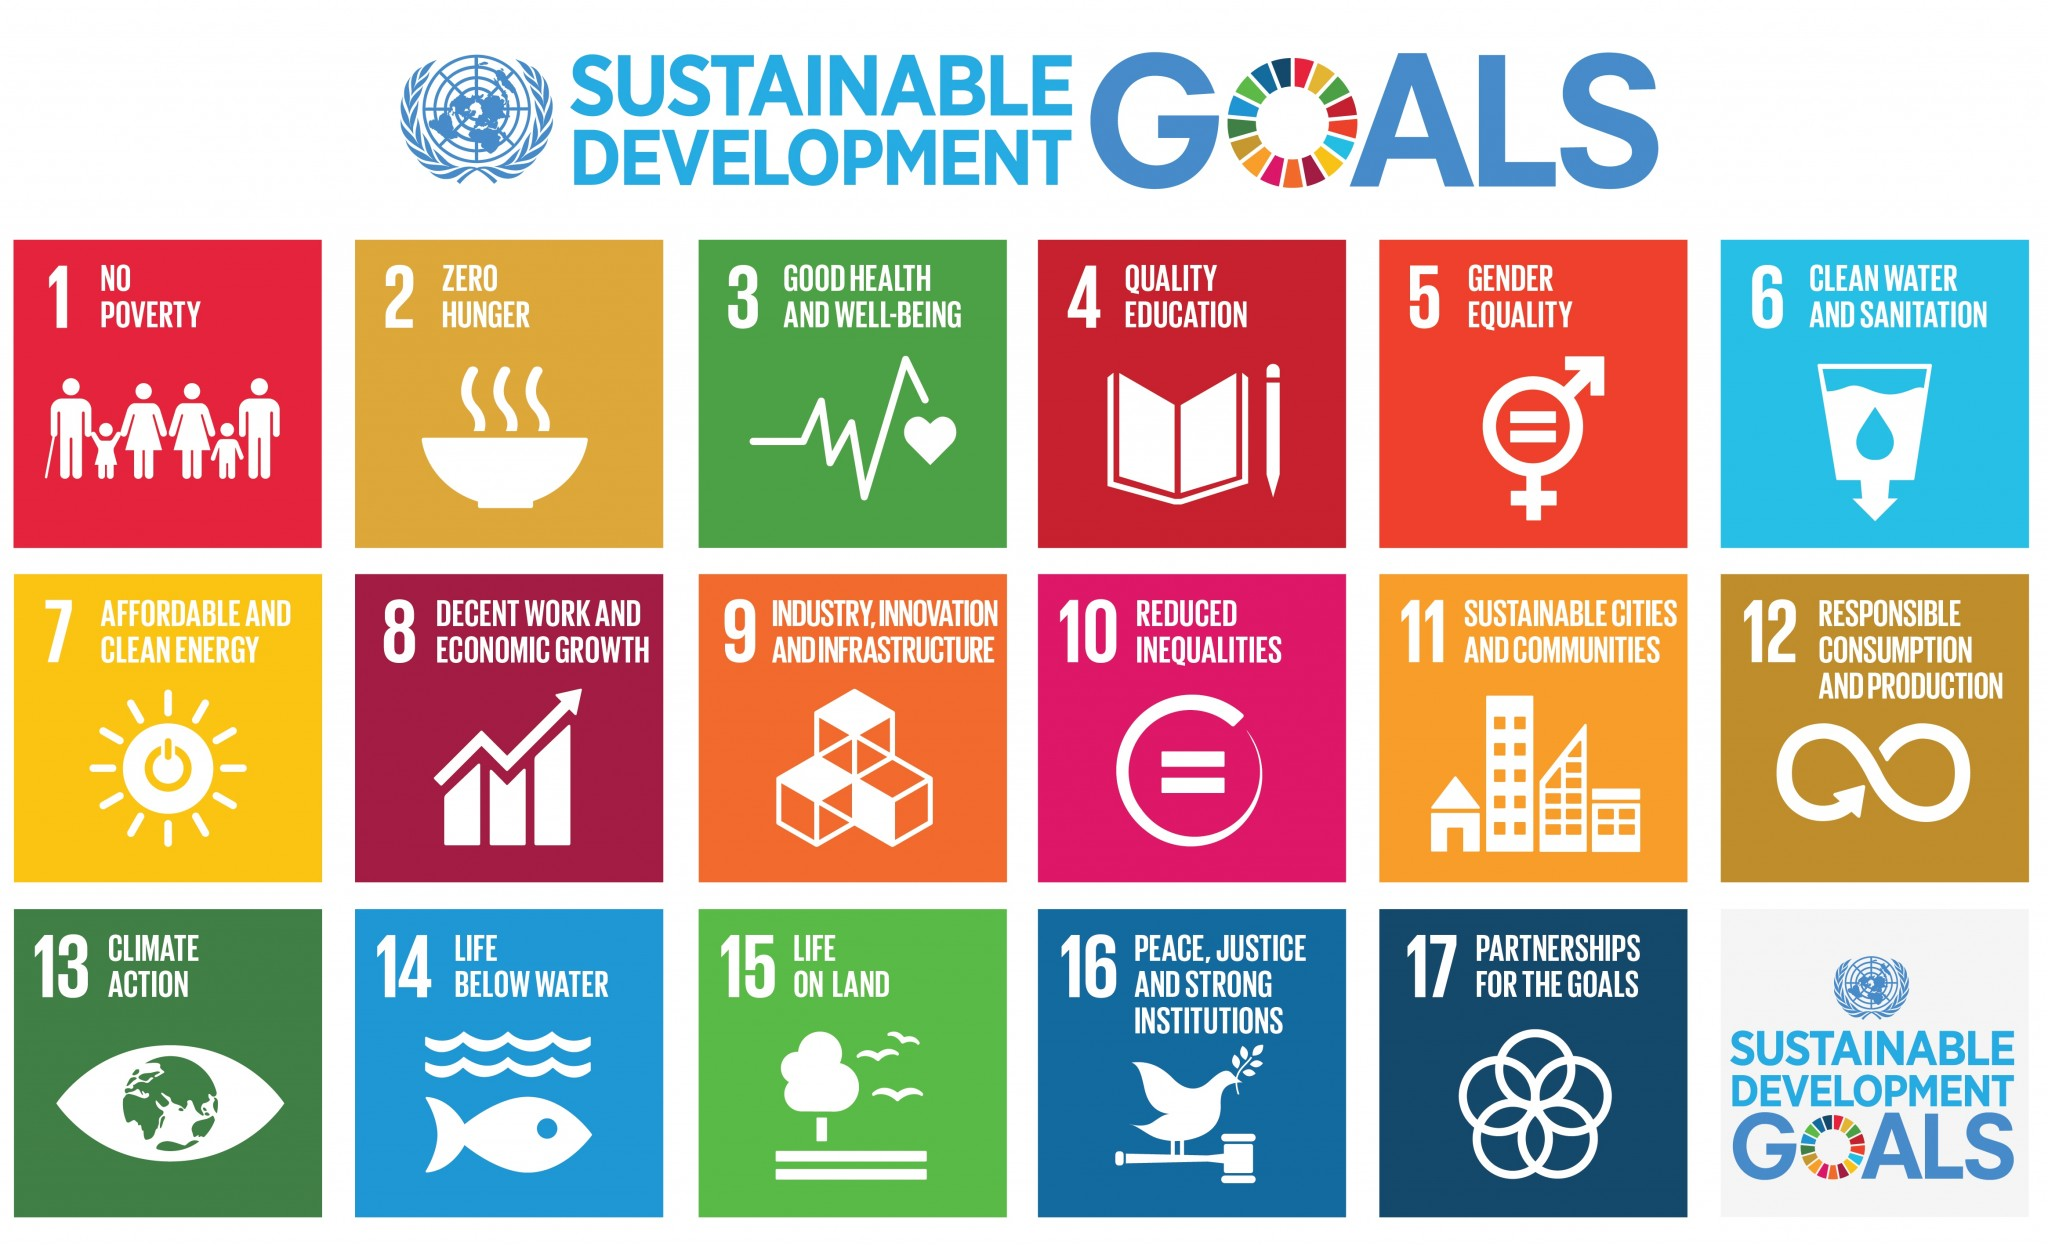 Keynote_Speaker_Activist_Igor_Beuker_UN_Global_Sustainable_Development_Goals